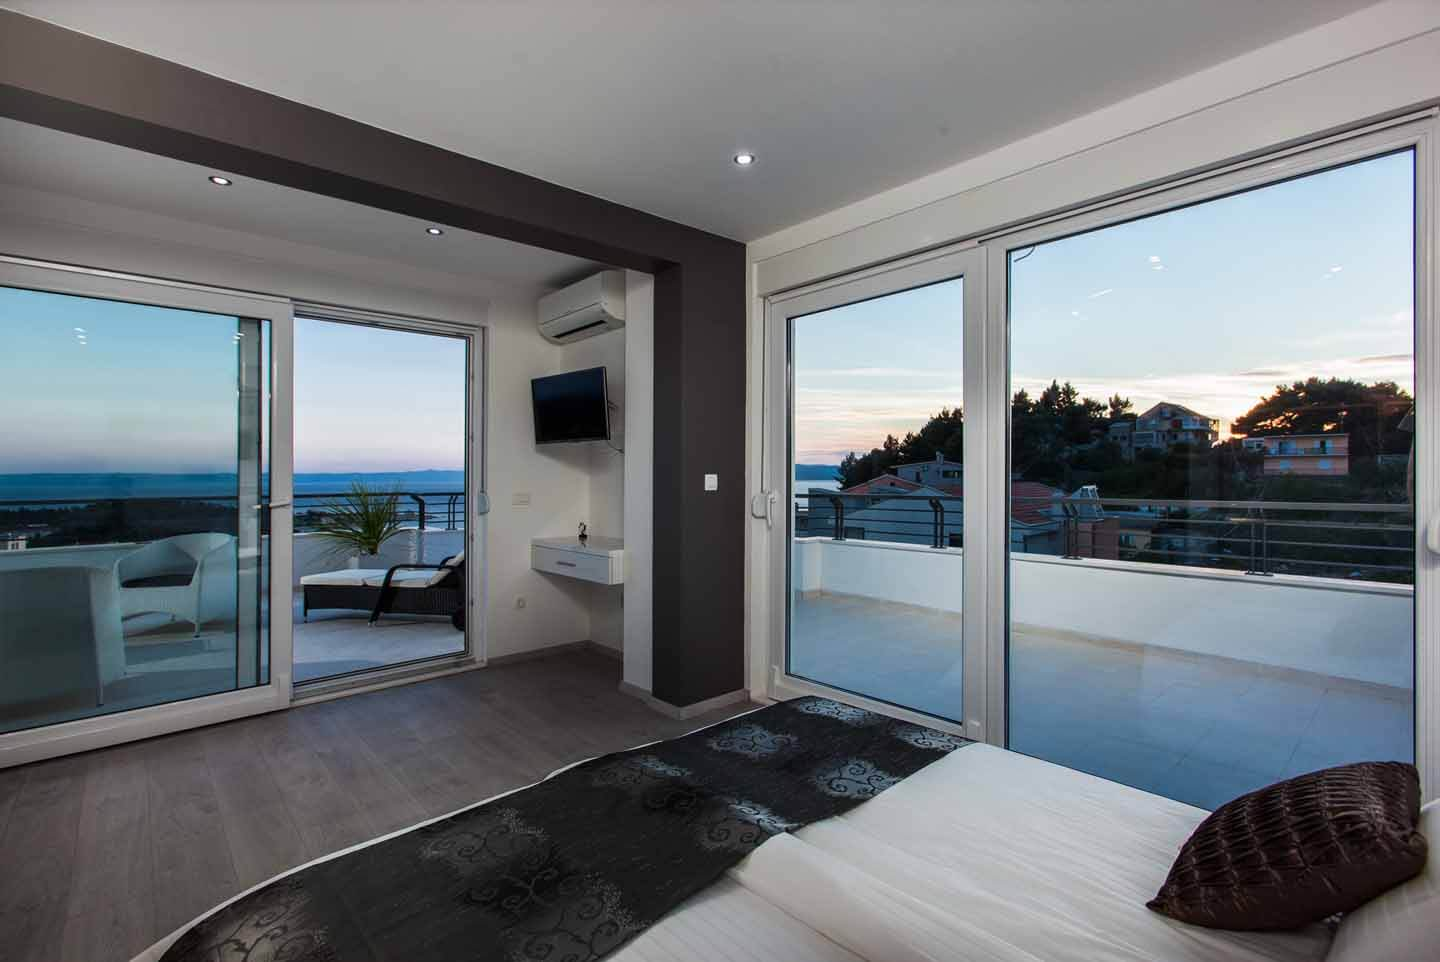 Double bedroom view